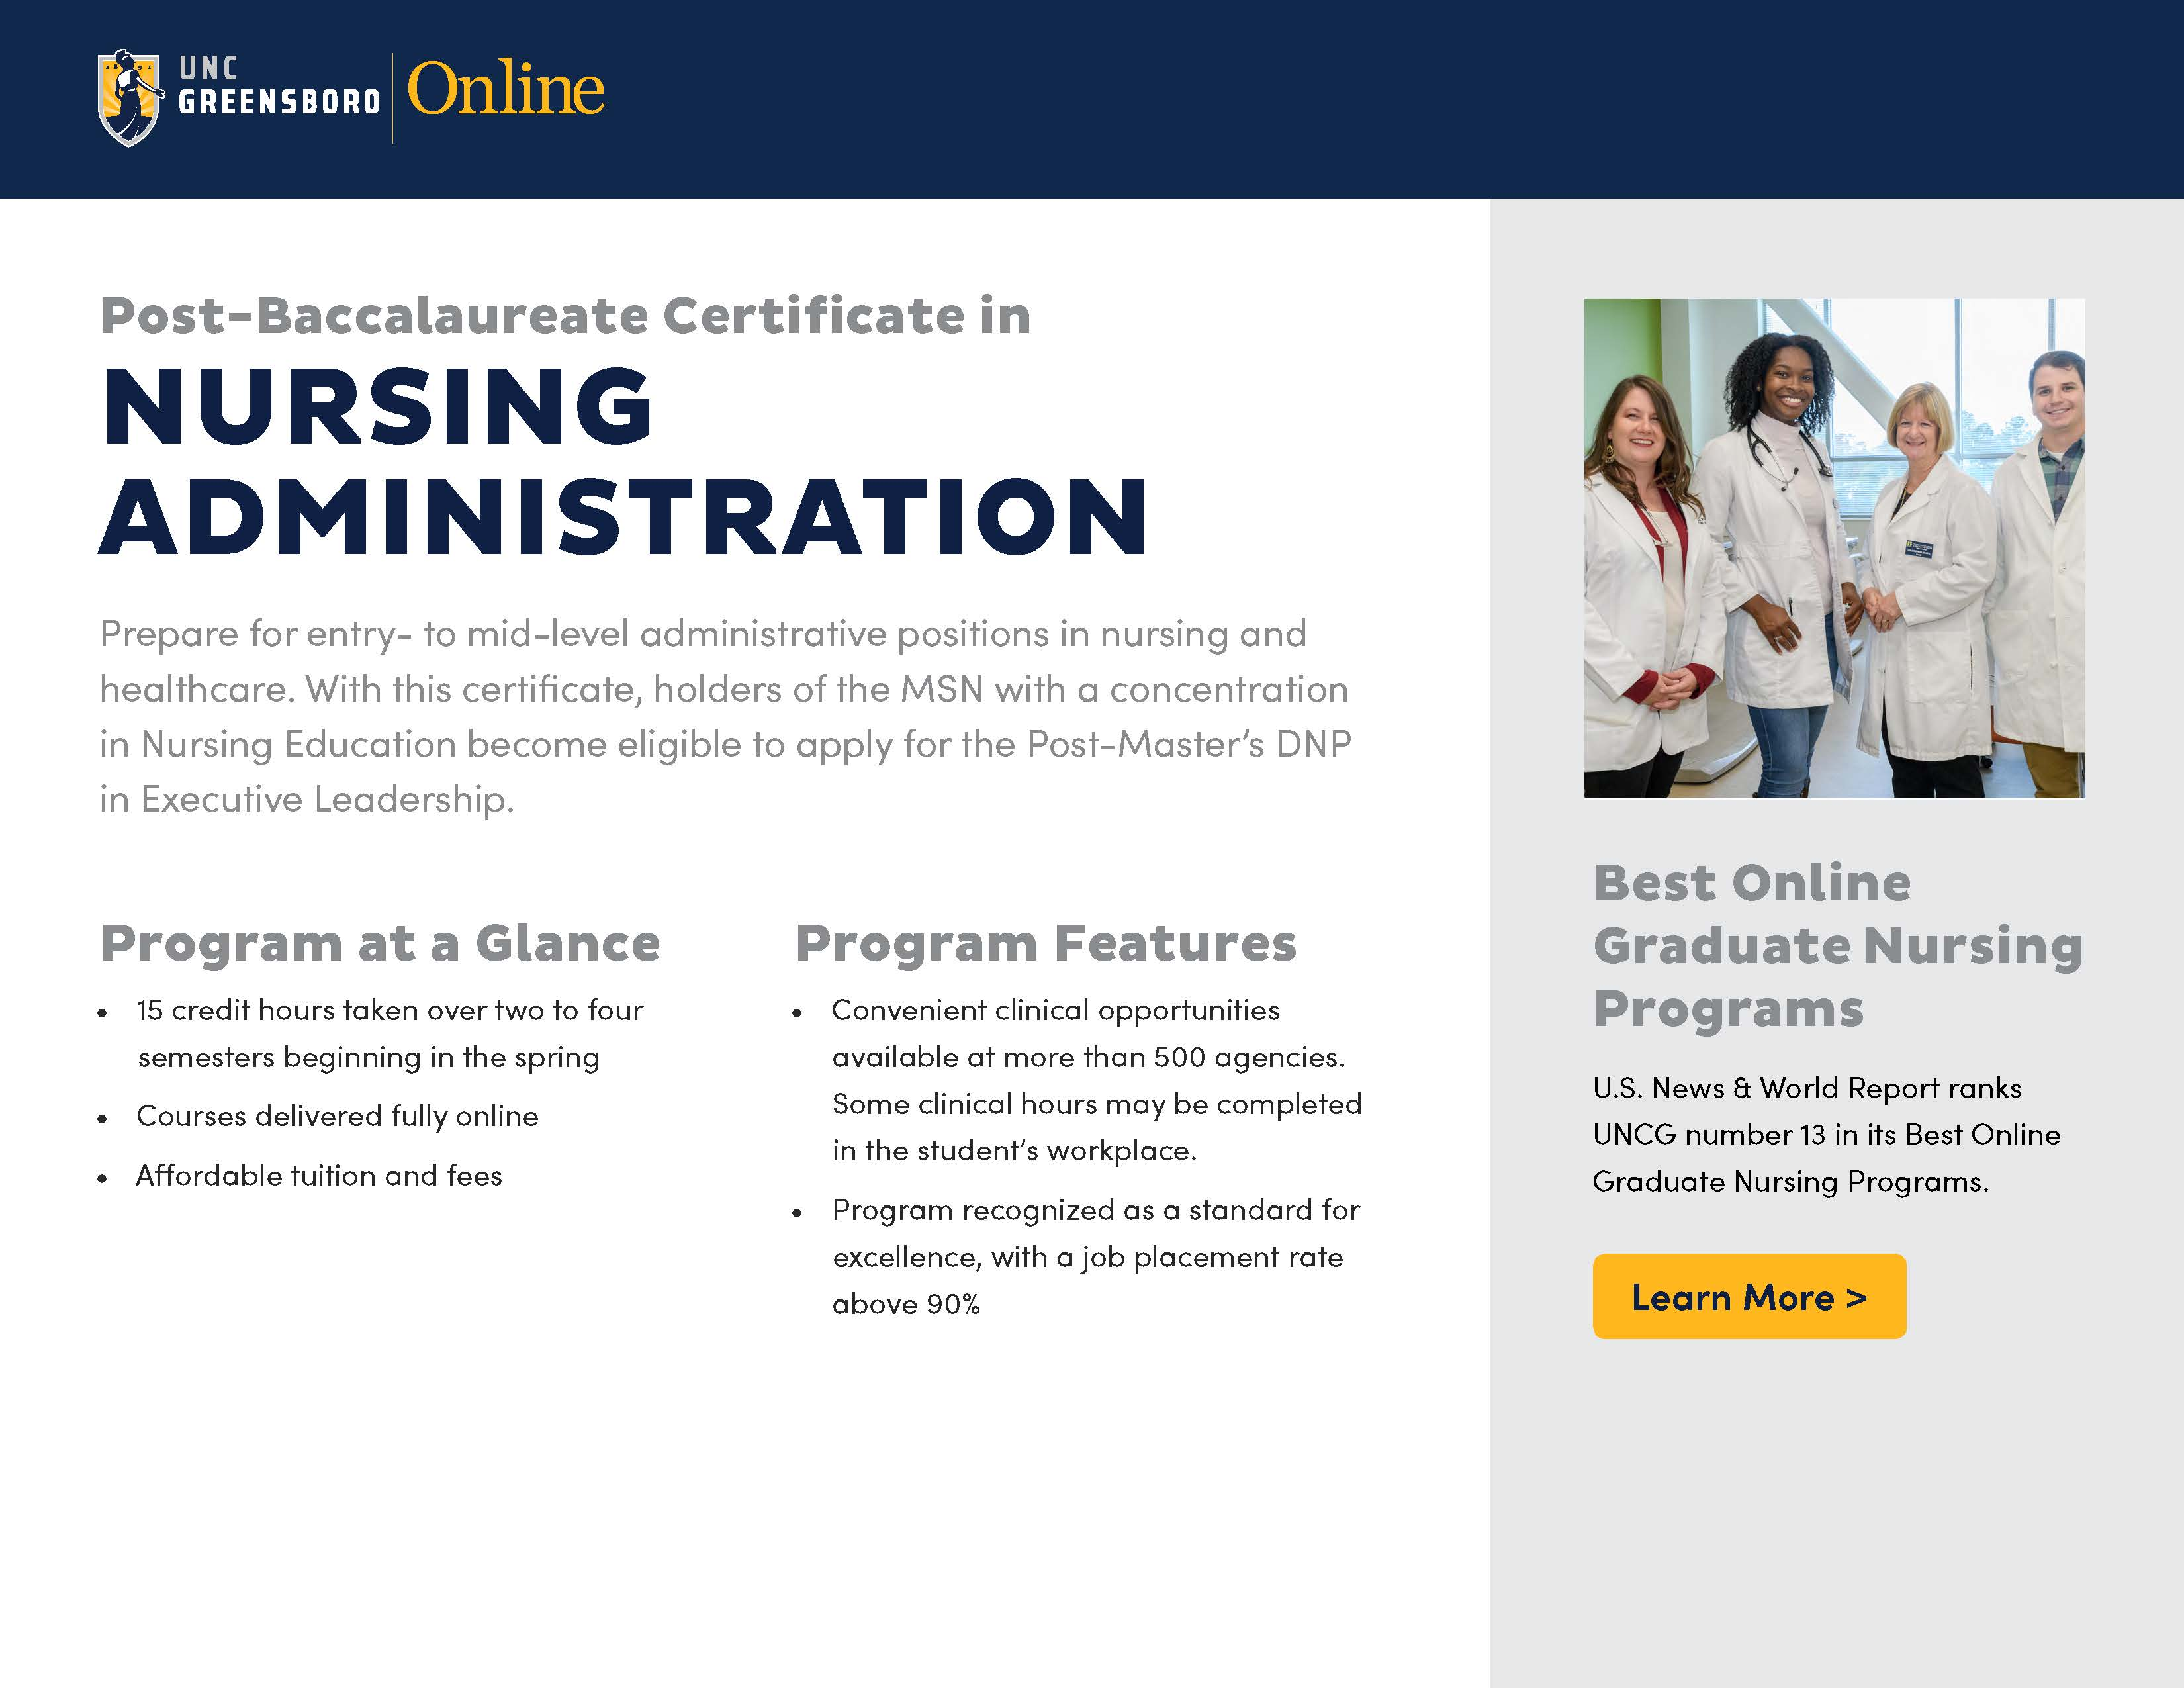 Post-Baccalaureate Certificate in Nursing Administration brochure thumbnail